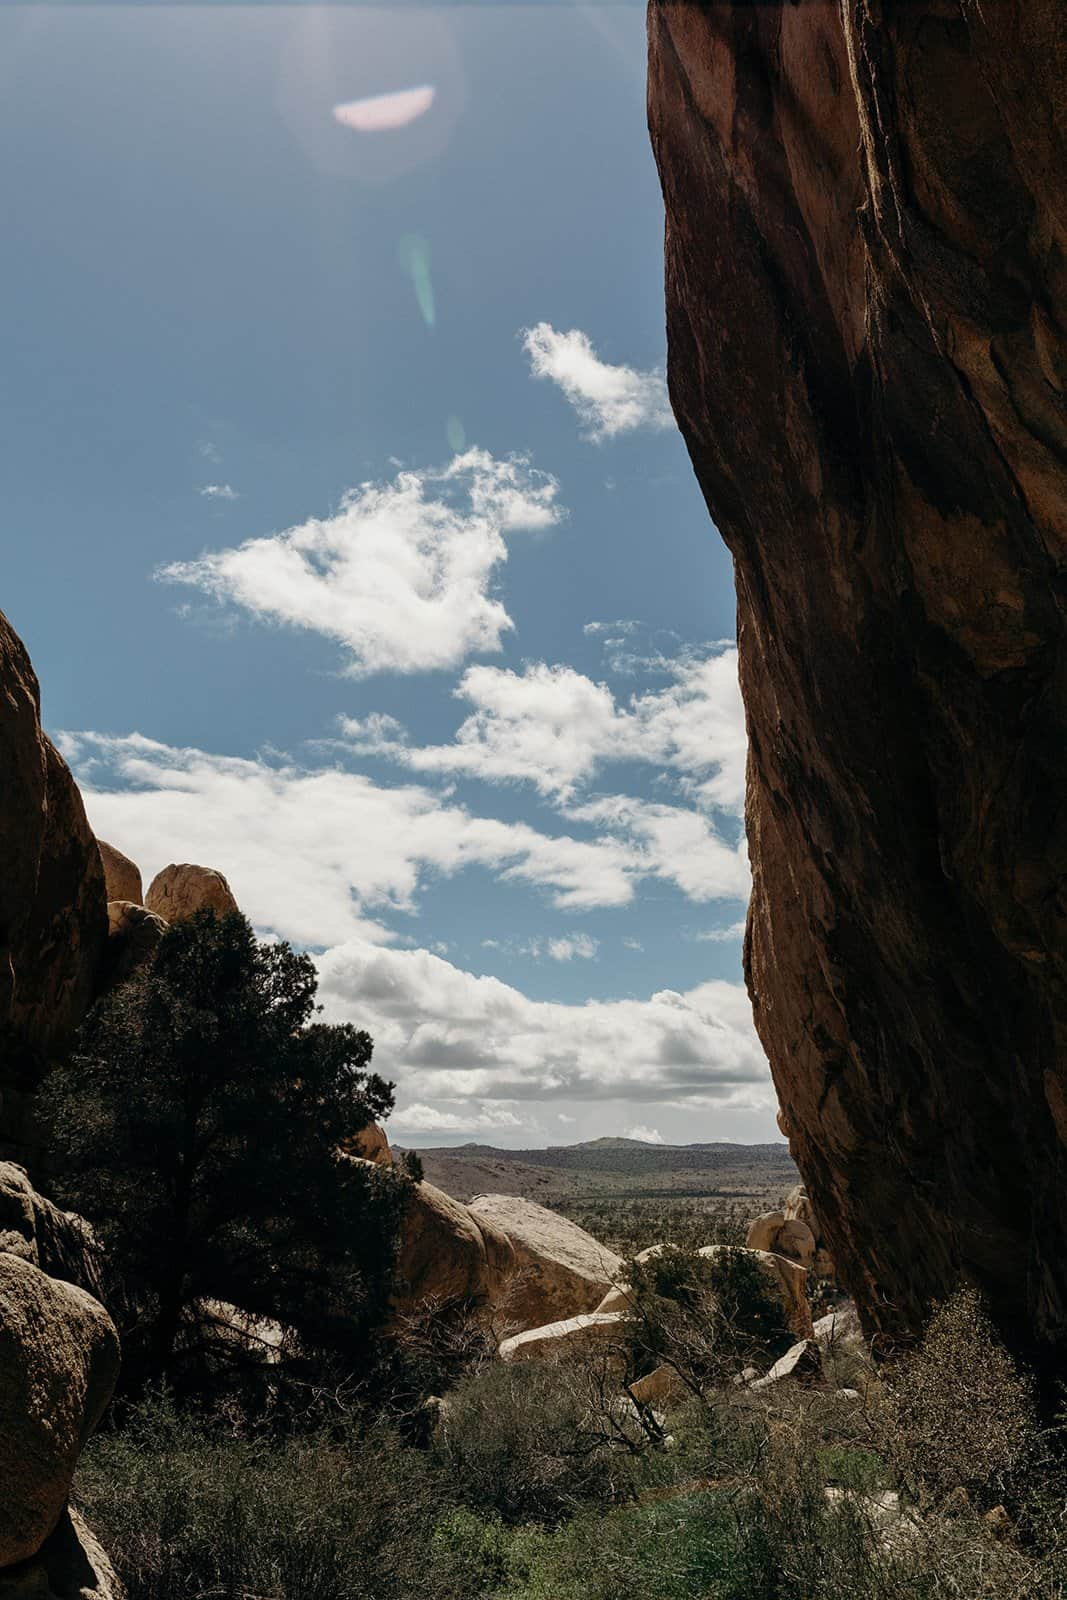 mid day overlooking Joshua Tree National Park